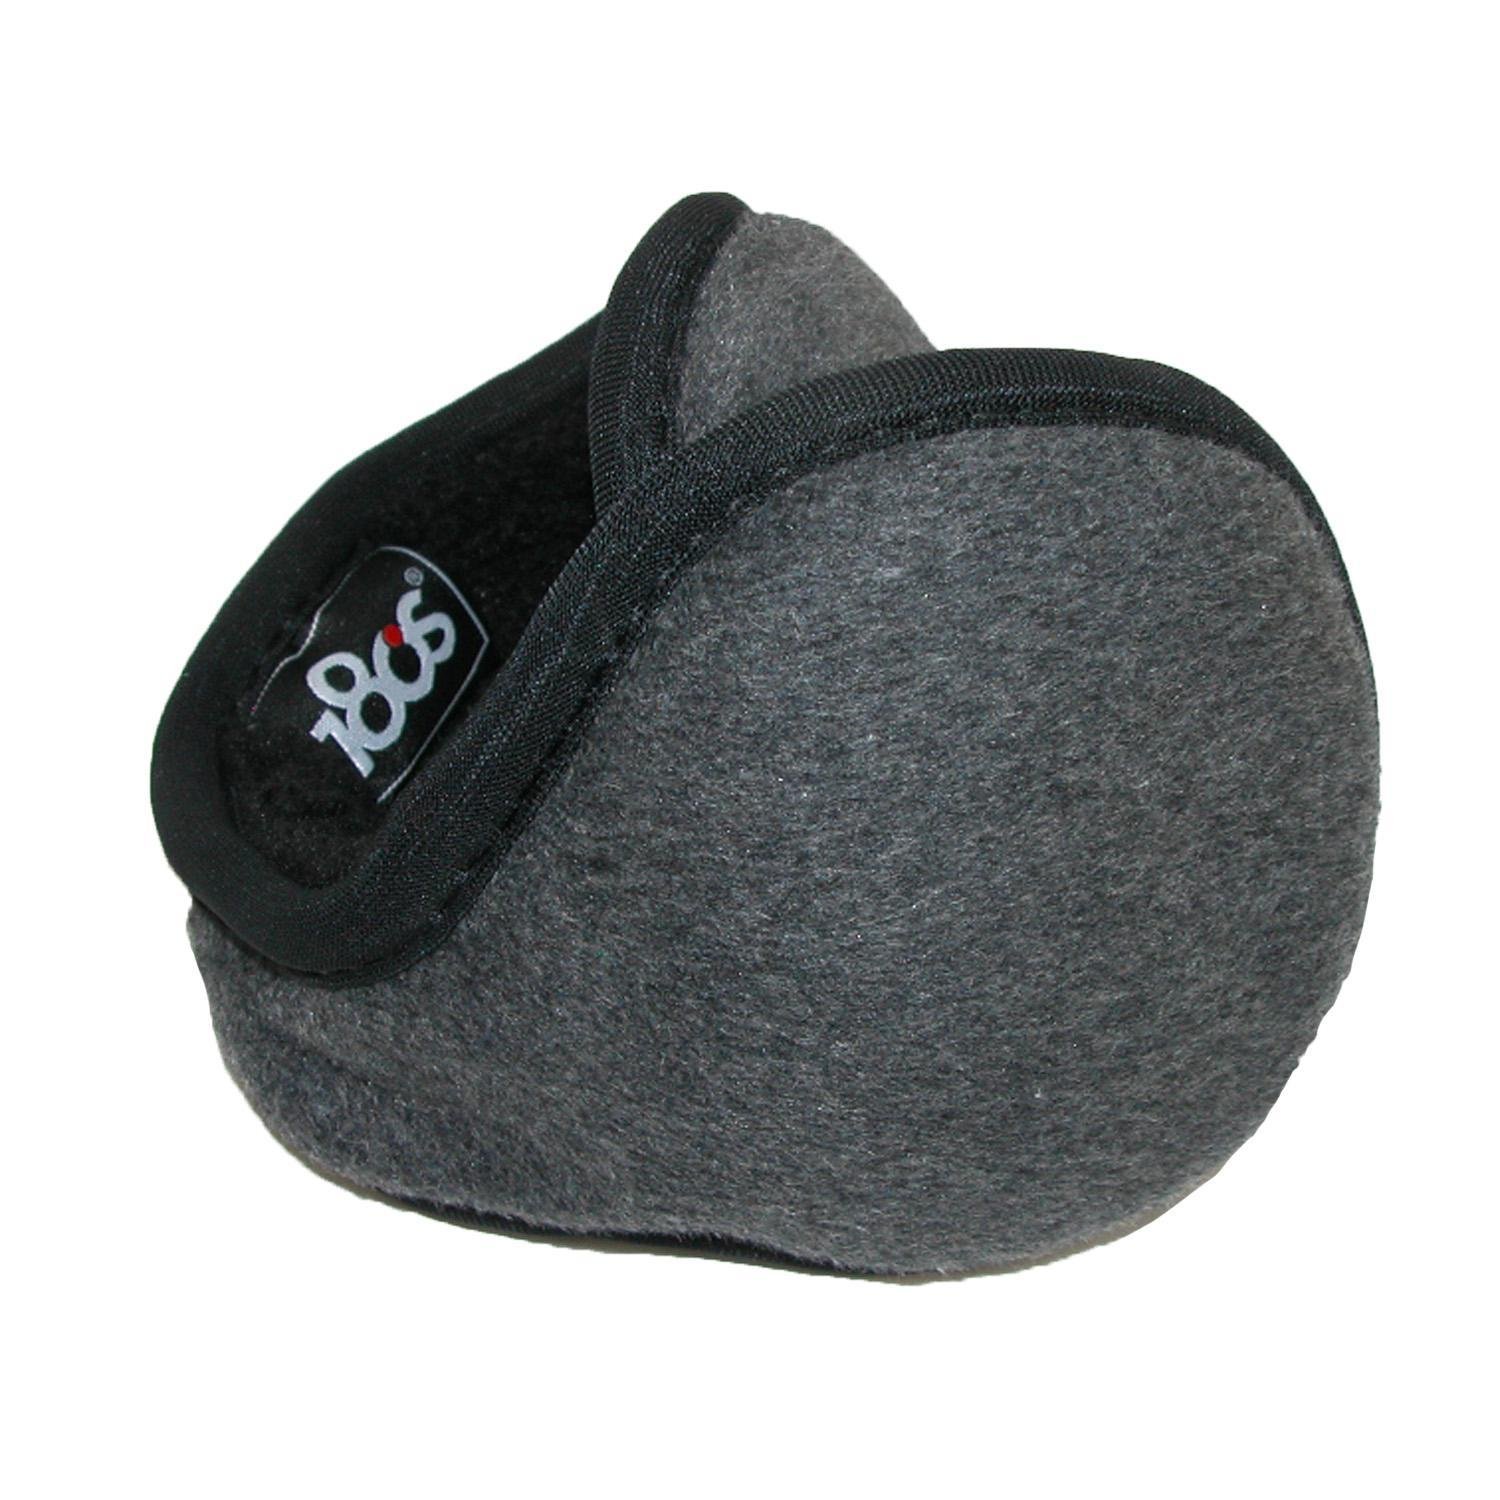 New-180s-Chesterfield-Wool-Wrap-Around-Earmuffs